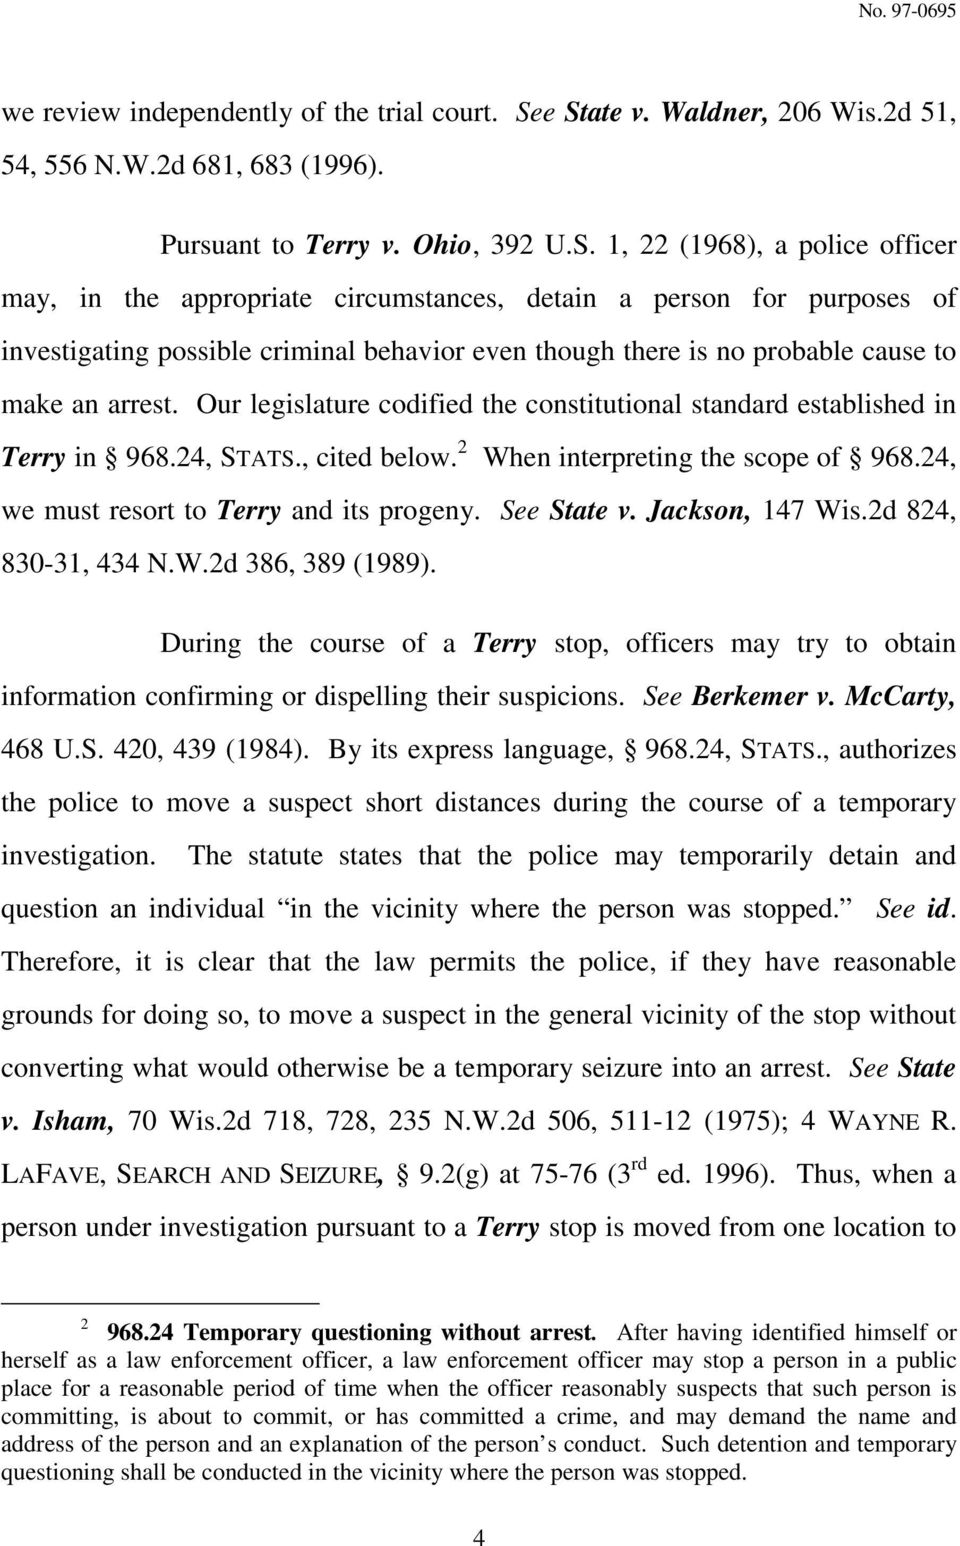 purposes of investigating possible criminal behavior even though there is no probable cause to make an arrest. Our legislature codified the constitutional standard established in Terry in 968.